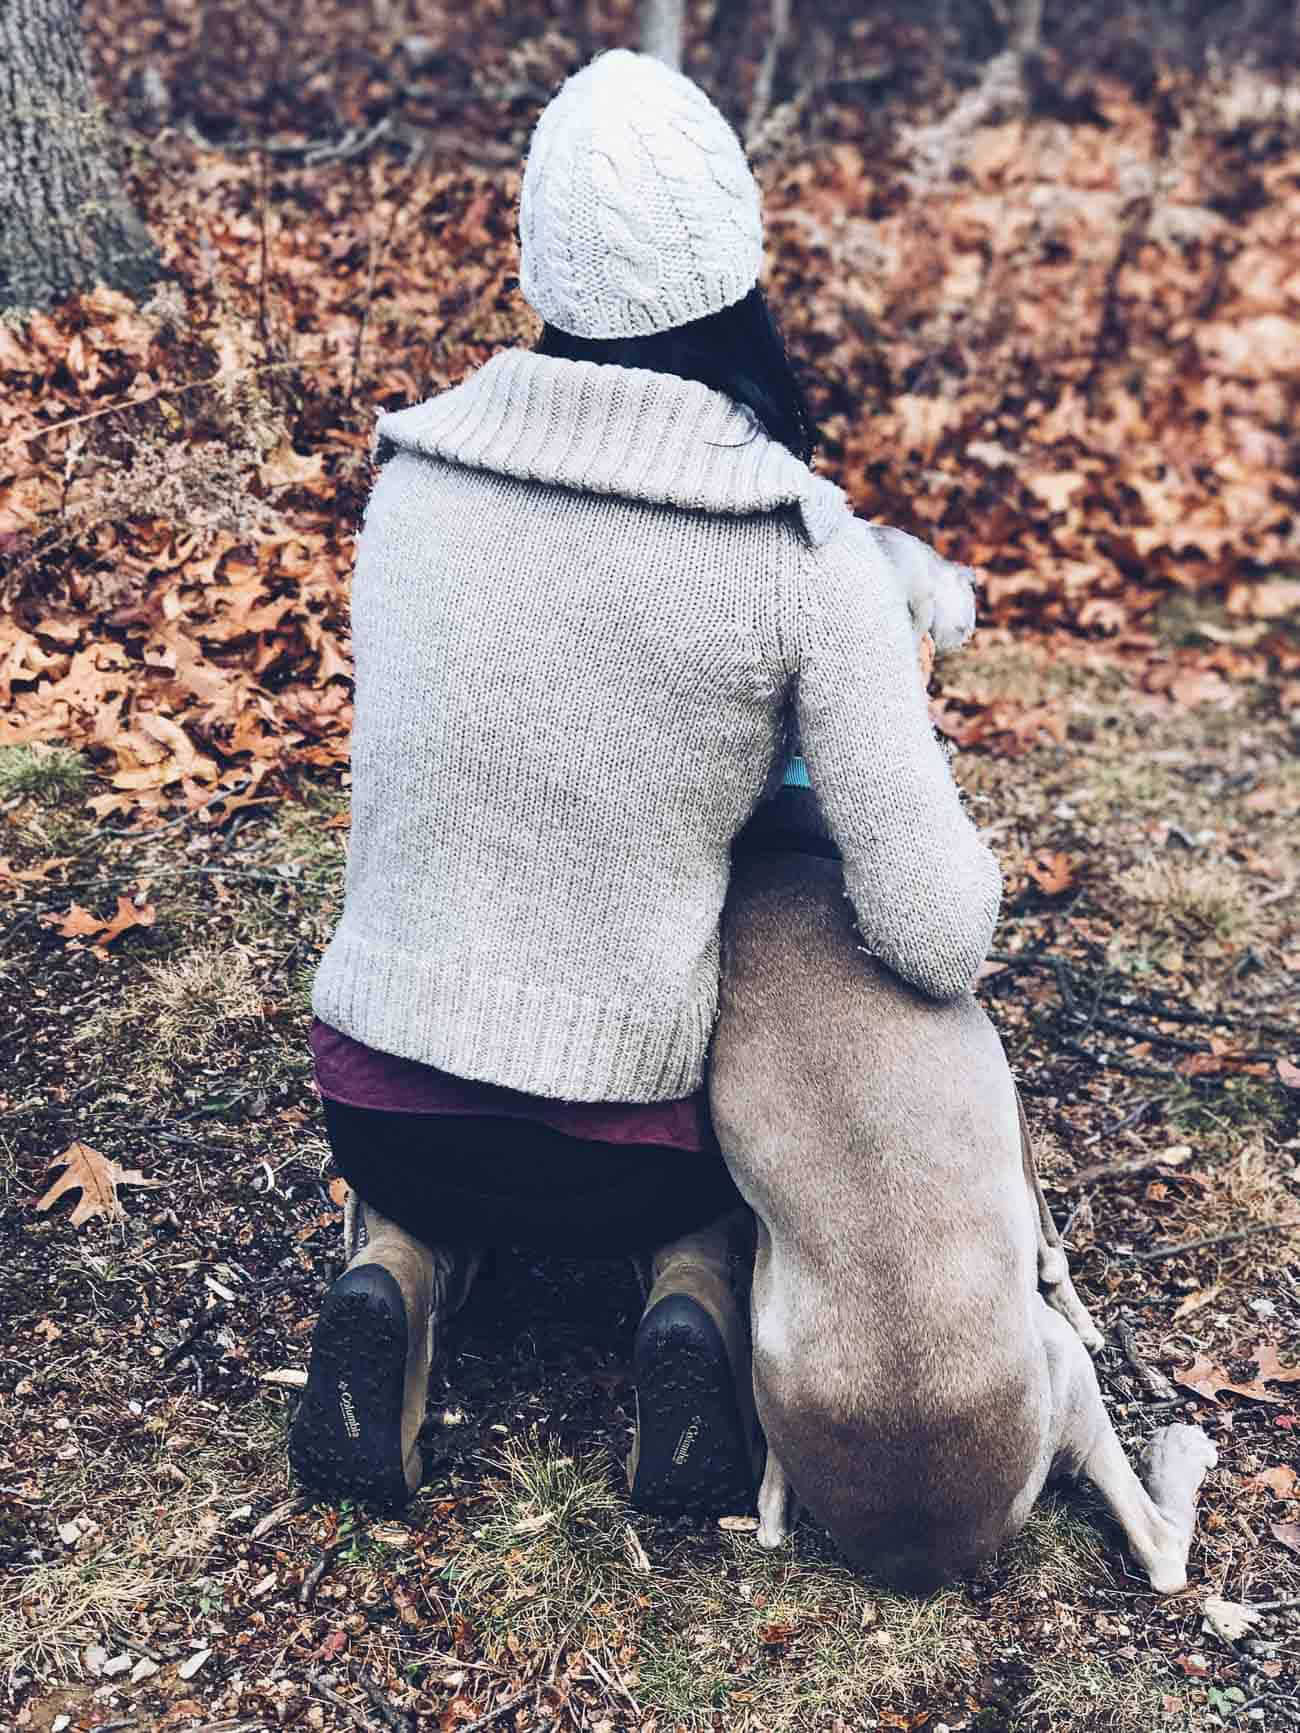 Hiking trails in NY with weimaraner